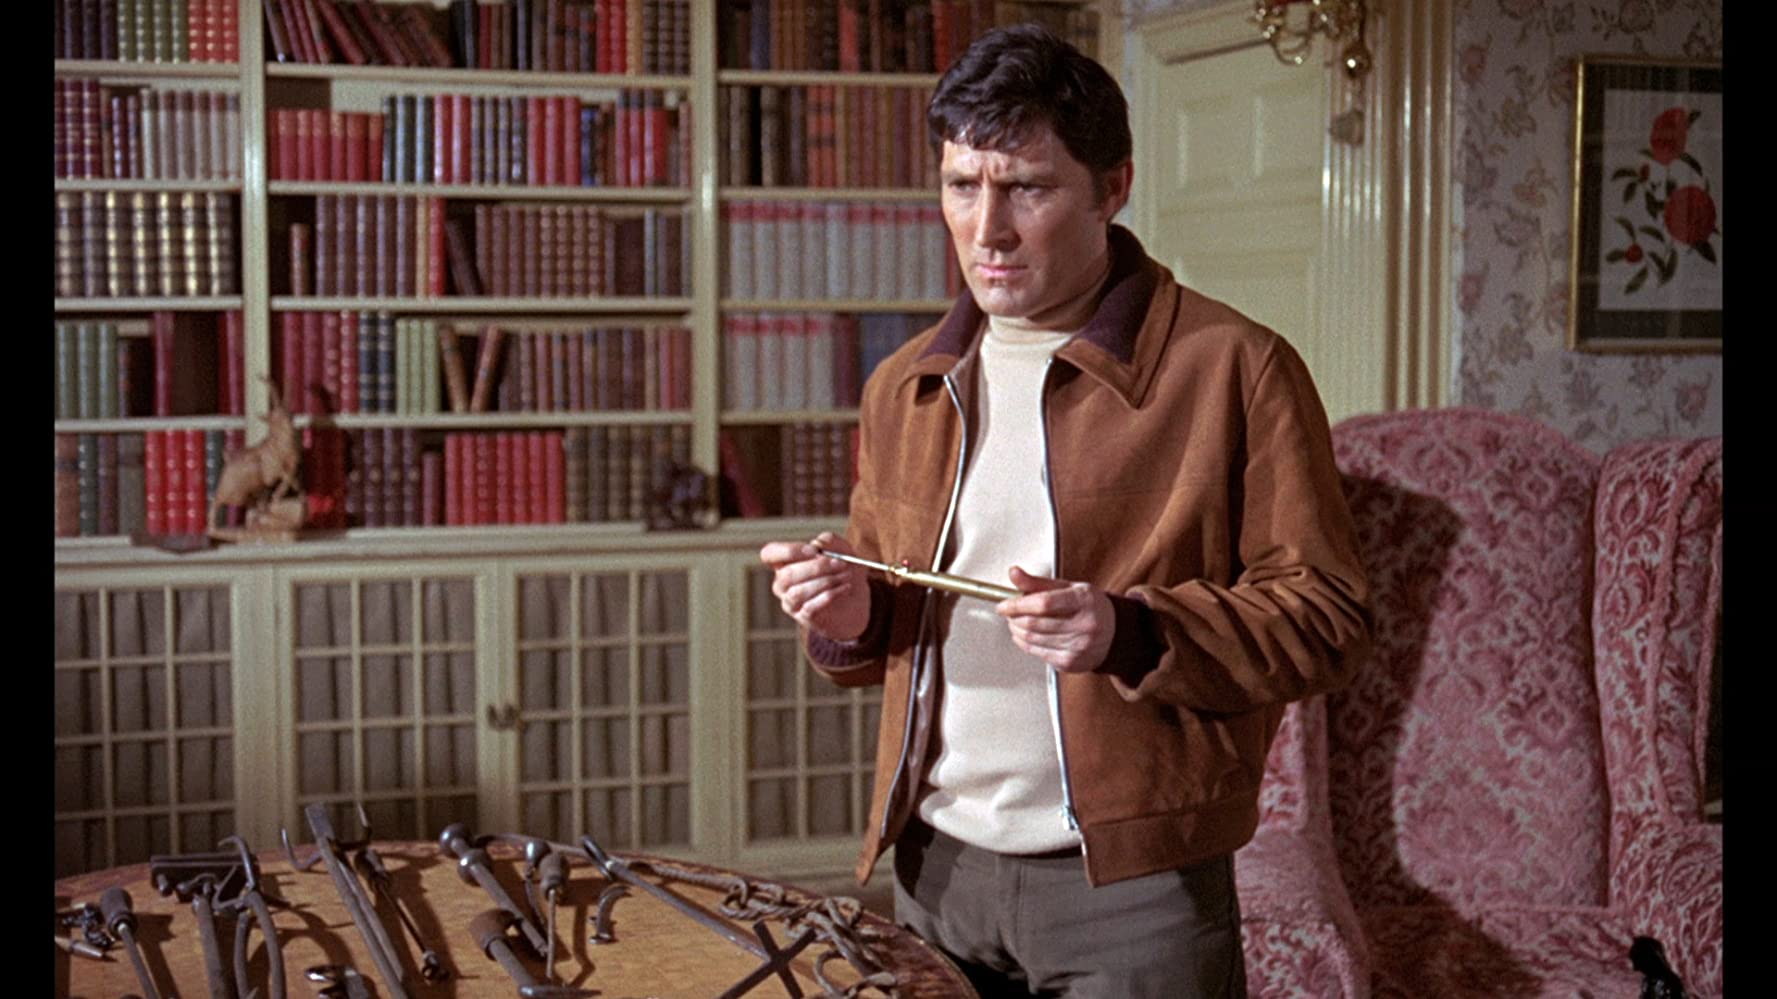 Mark Eden in Curse of the Crimson Altar (1968)